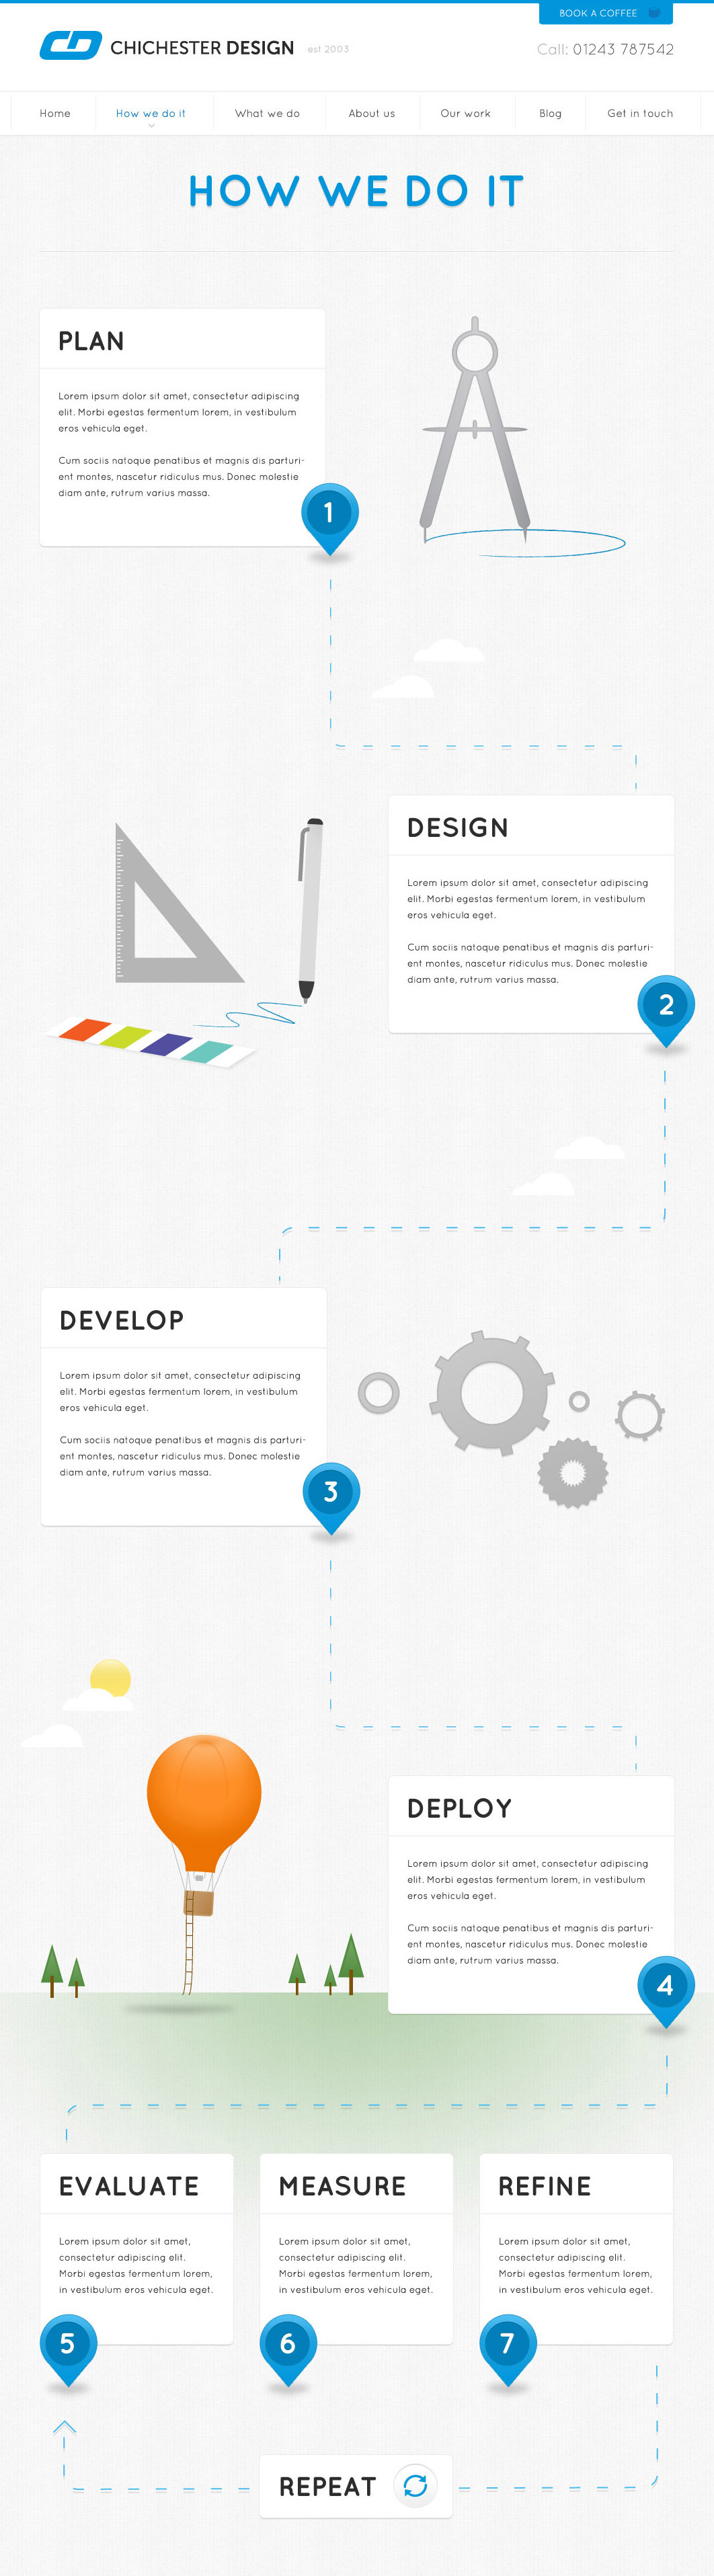 Chichester Design how we do it page